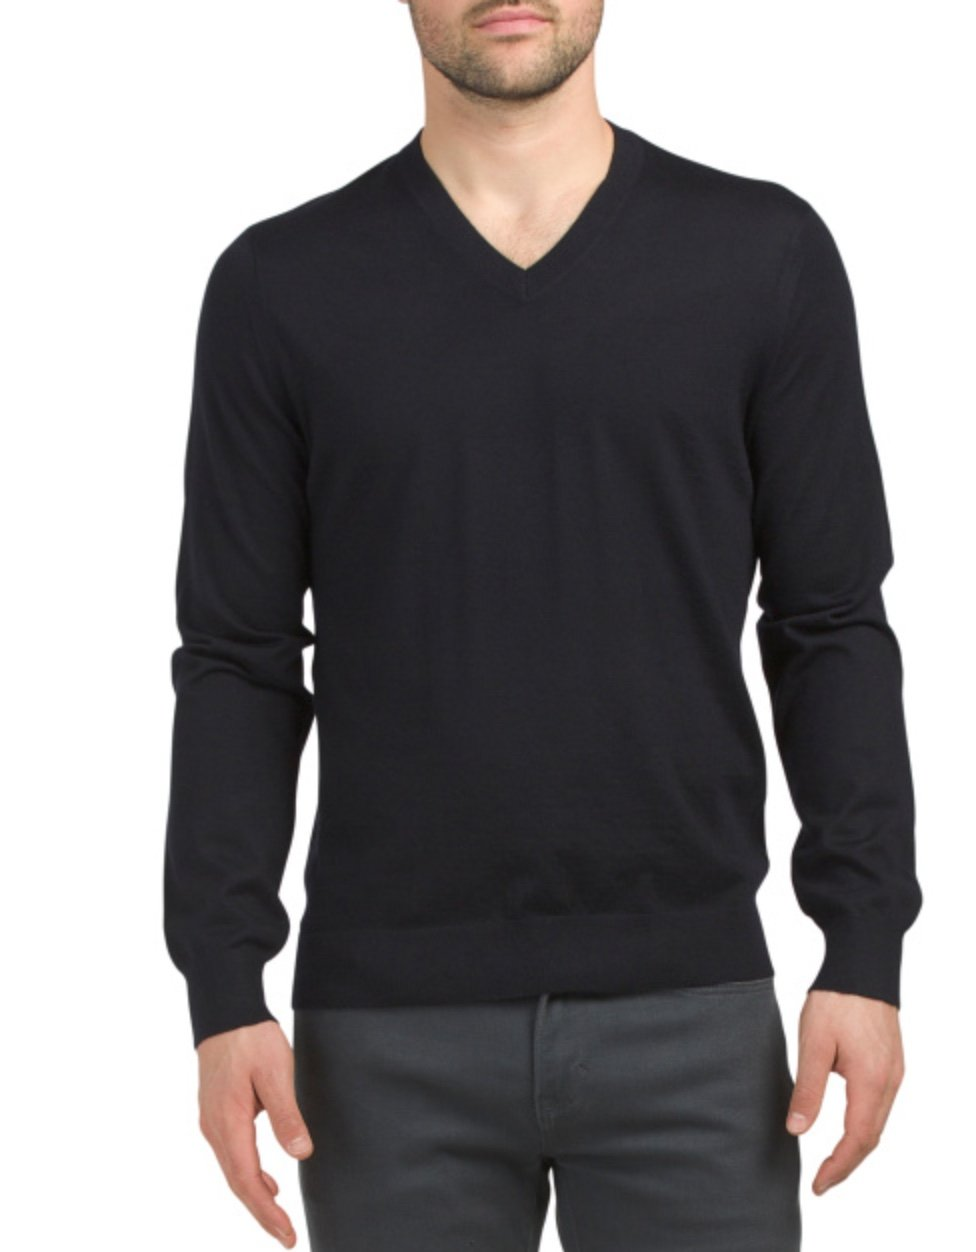 Men's Cashmere Sweater, TJMaxx